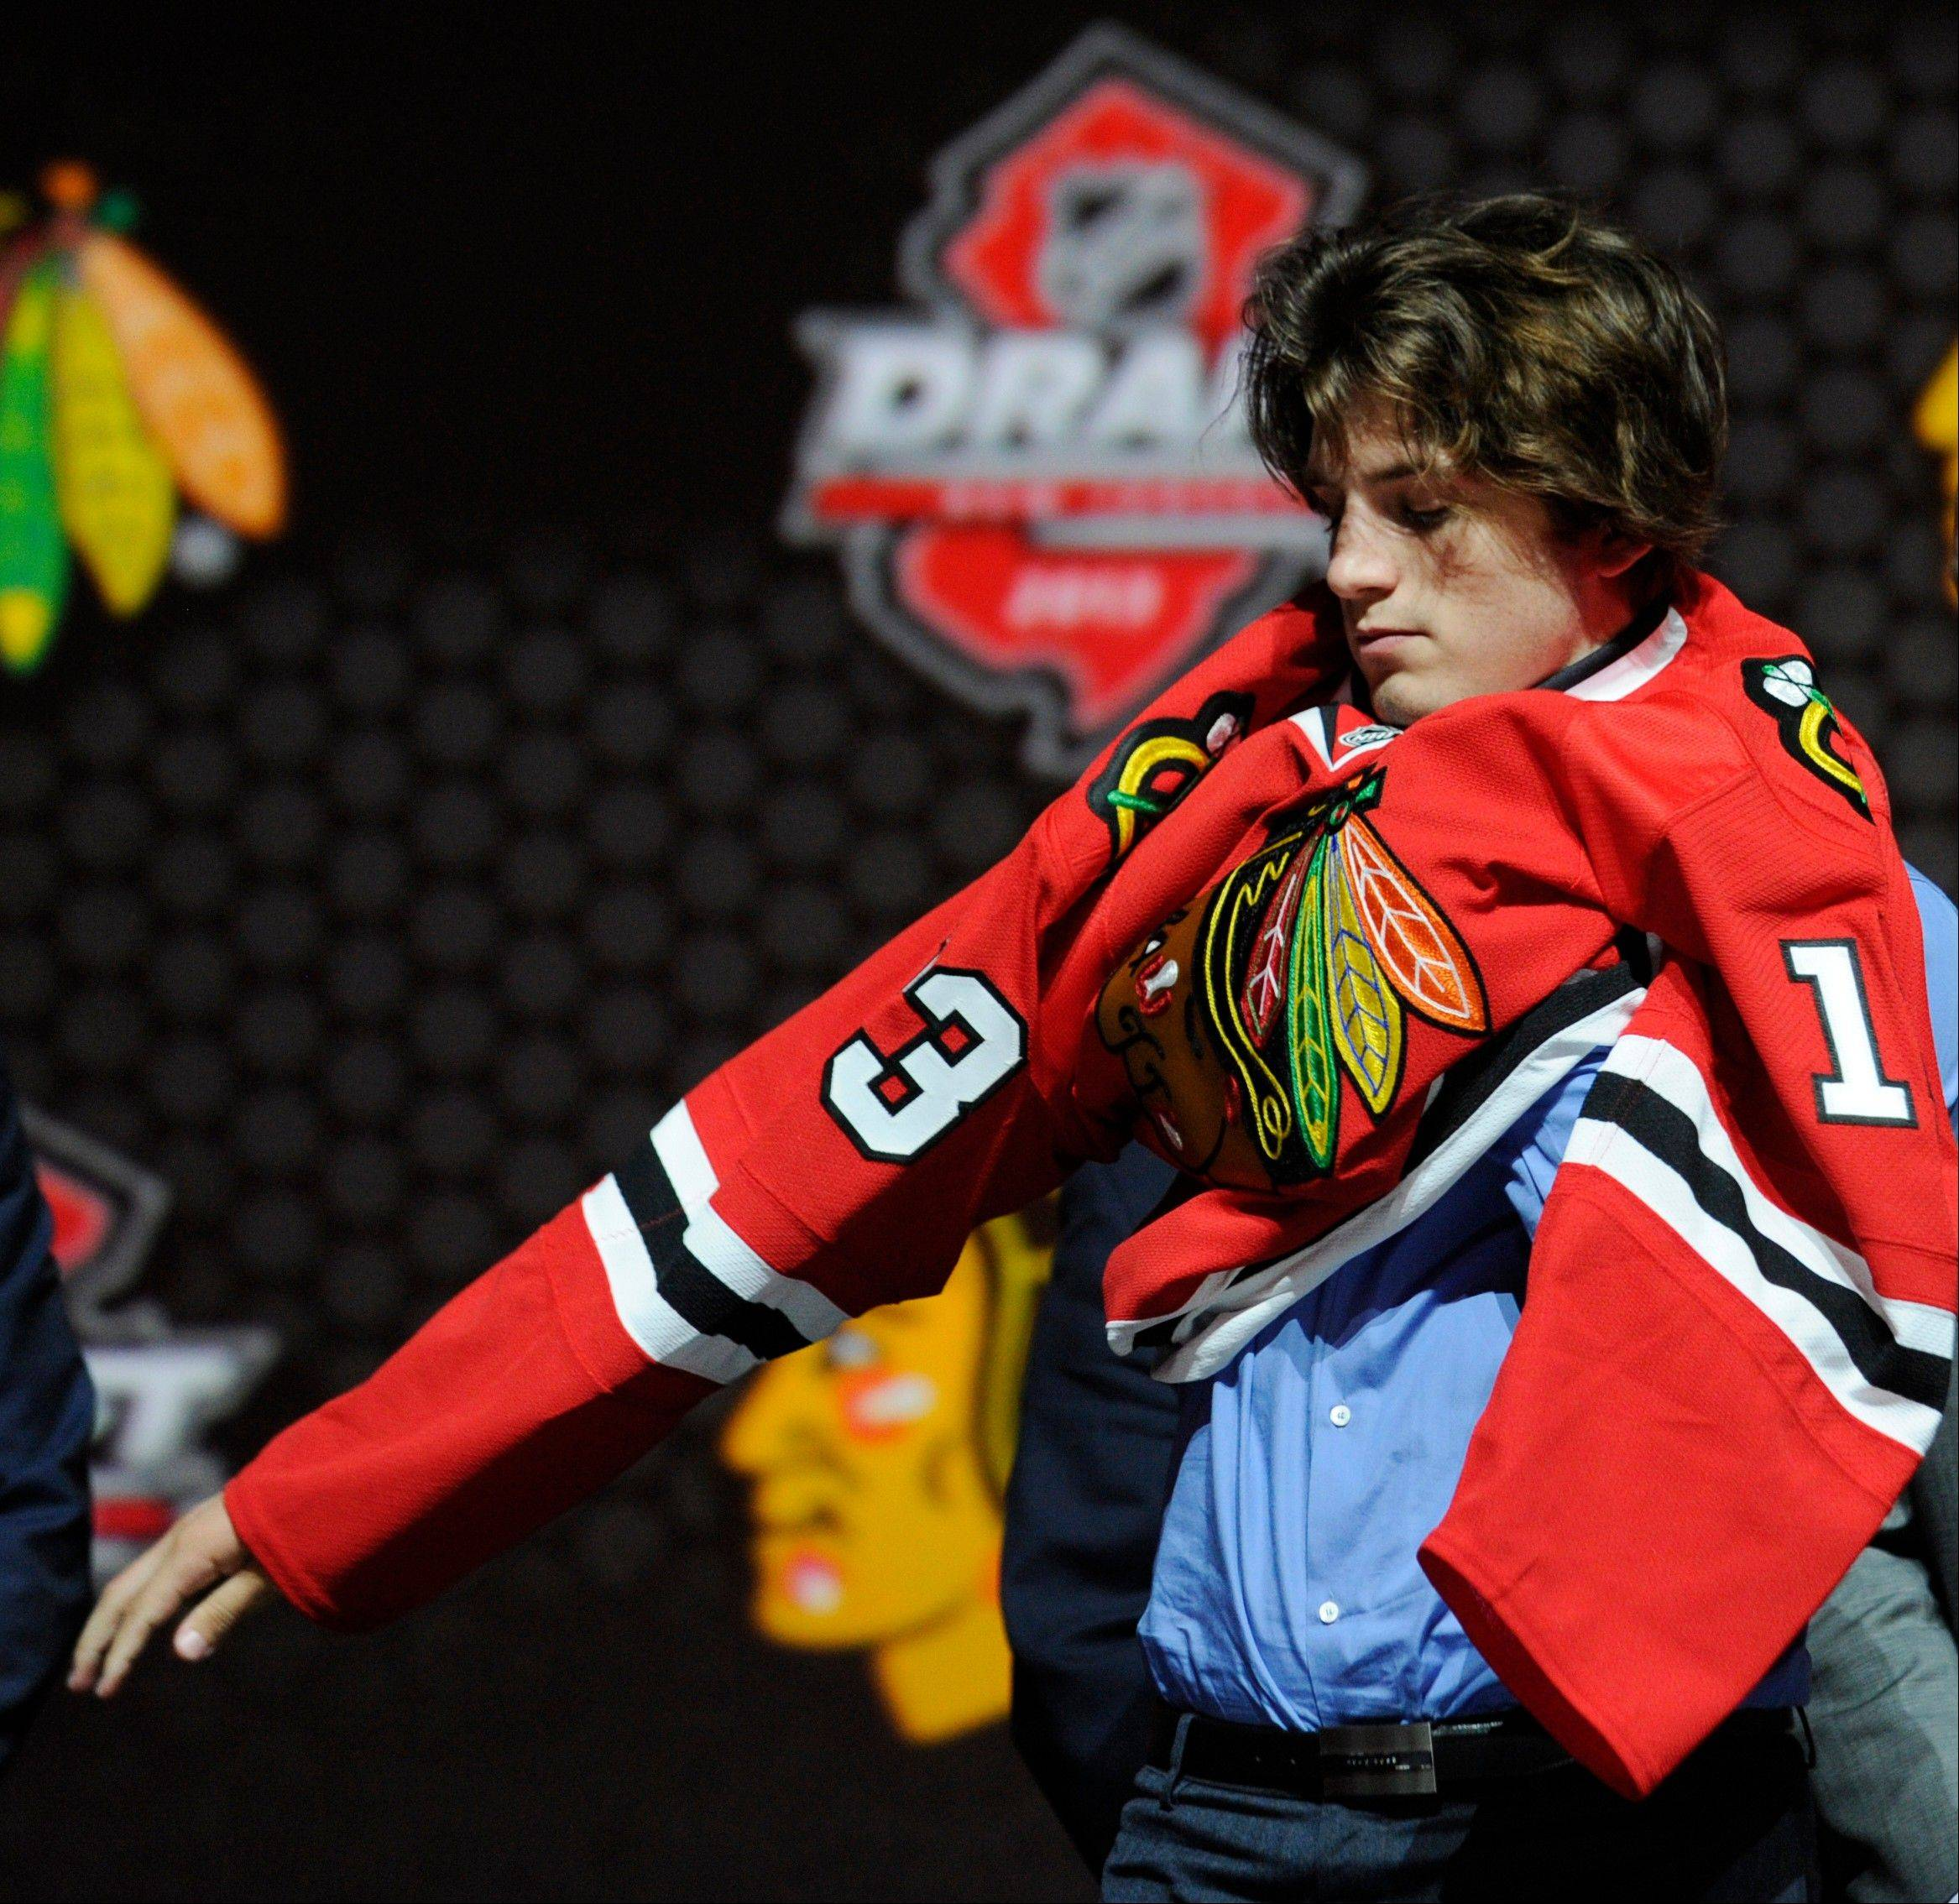 Ryan Hartman, a winger and native of West Dundee, pulls on a Chicago Blackhawks sweater after being chosen 30th overall in the first round of the NHL hockey draft Sunday in Newark, N.J.